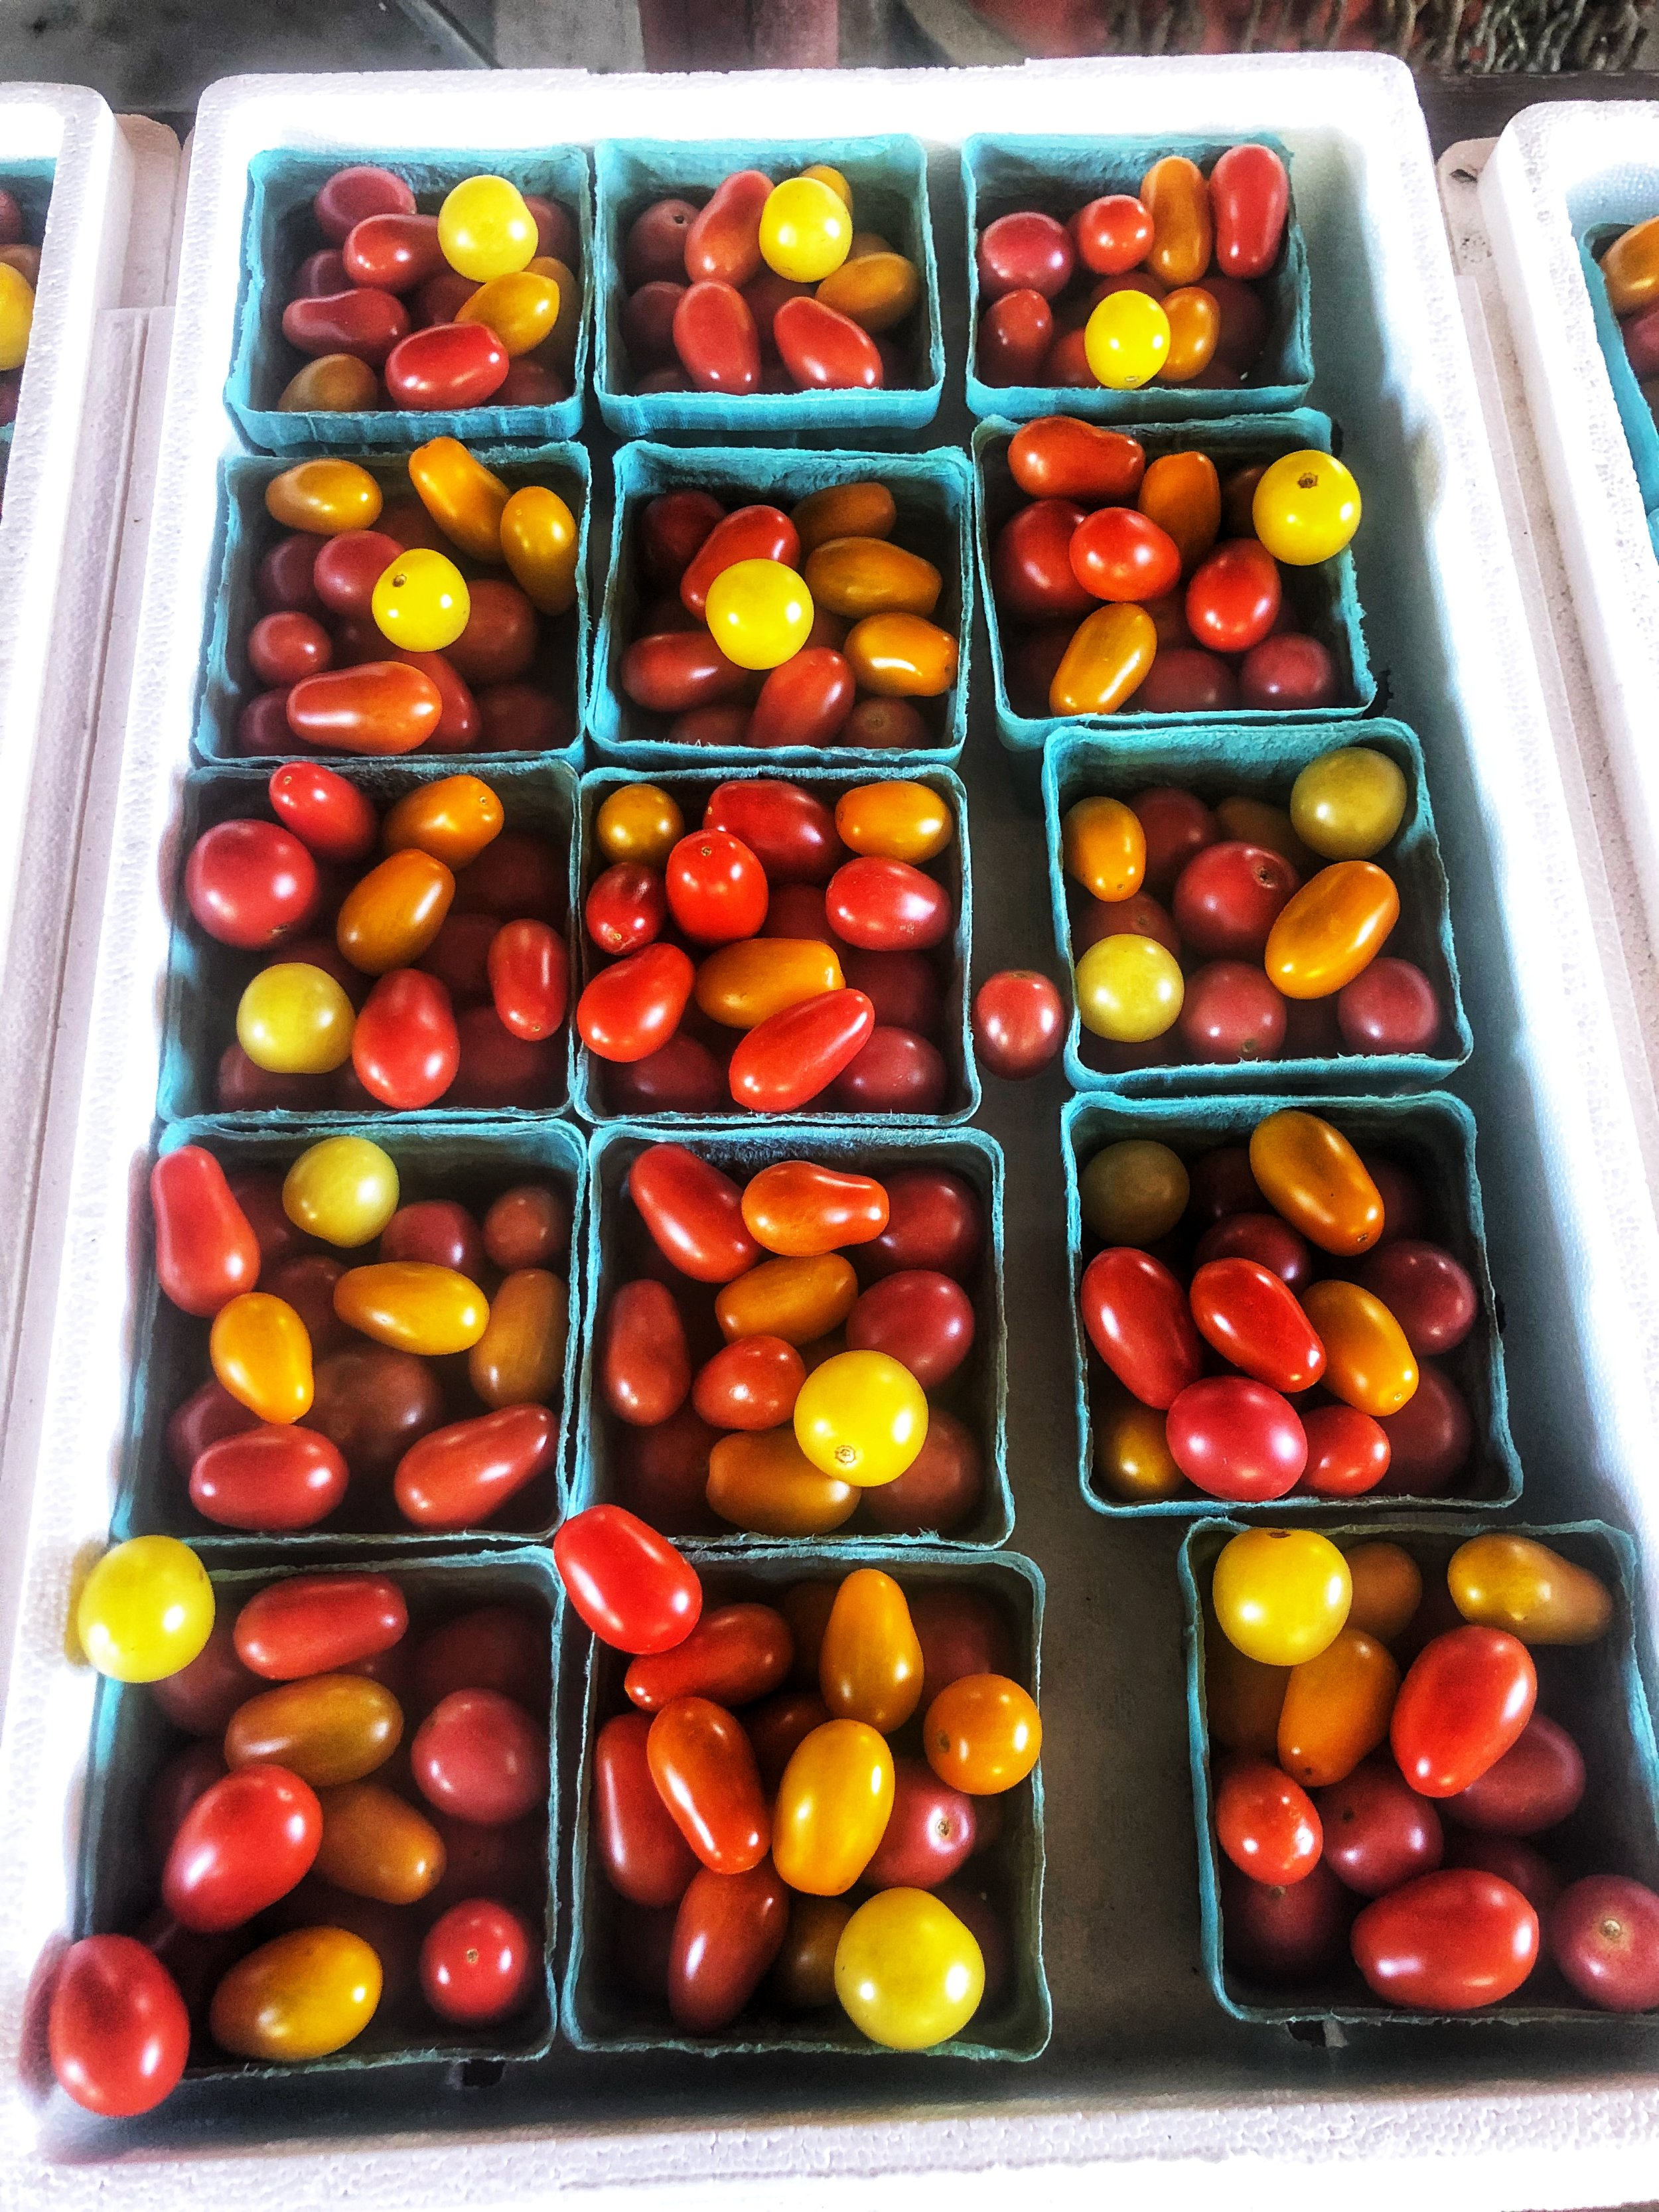 Macone Farm tomatoes for Russo's